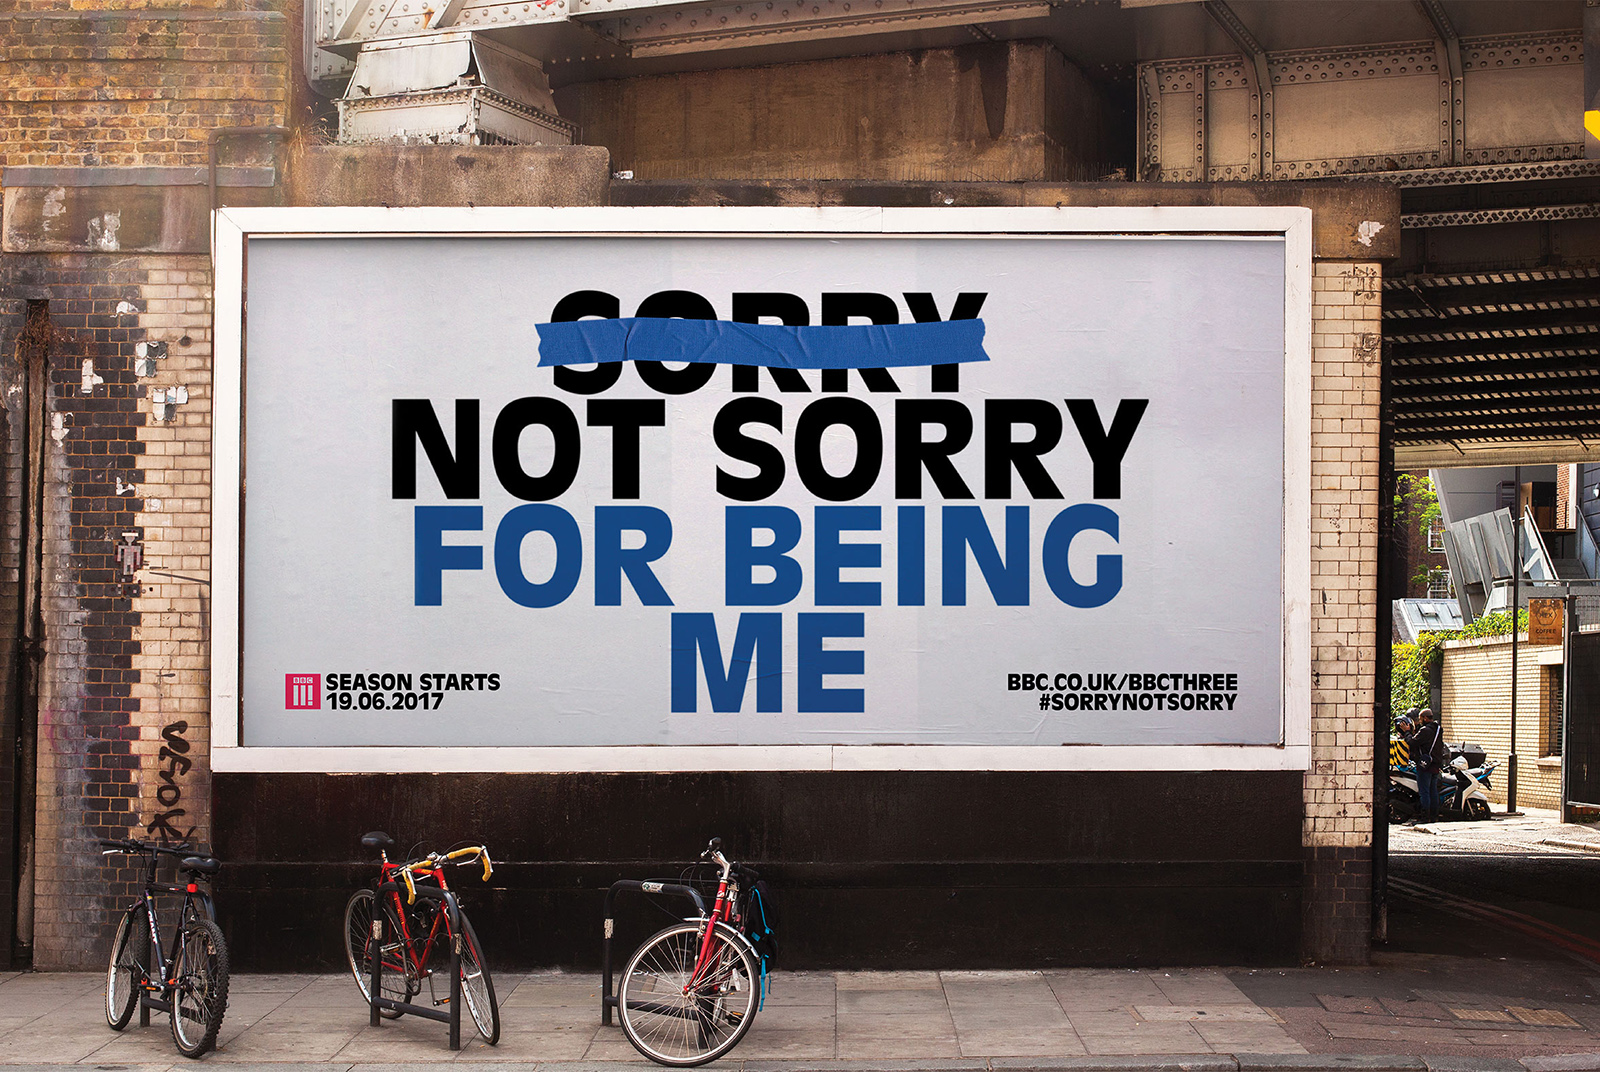 BBC Three – Sorry Not Sorry